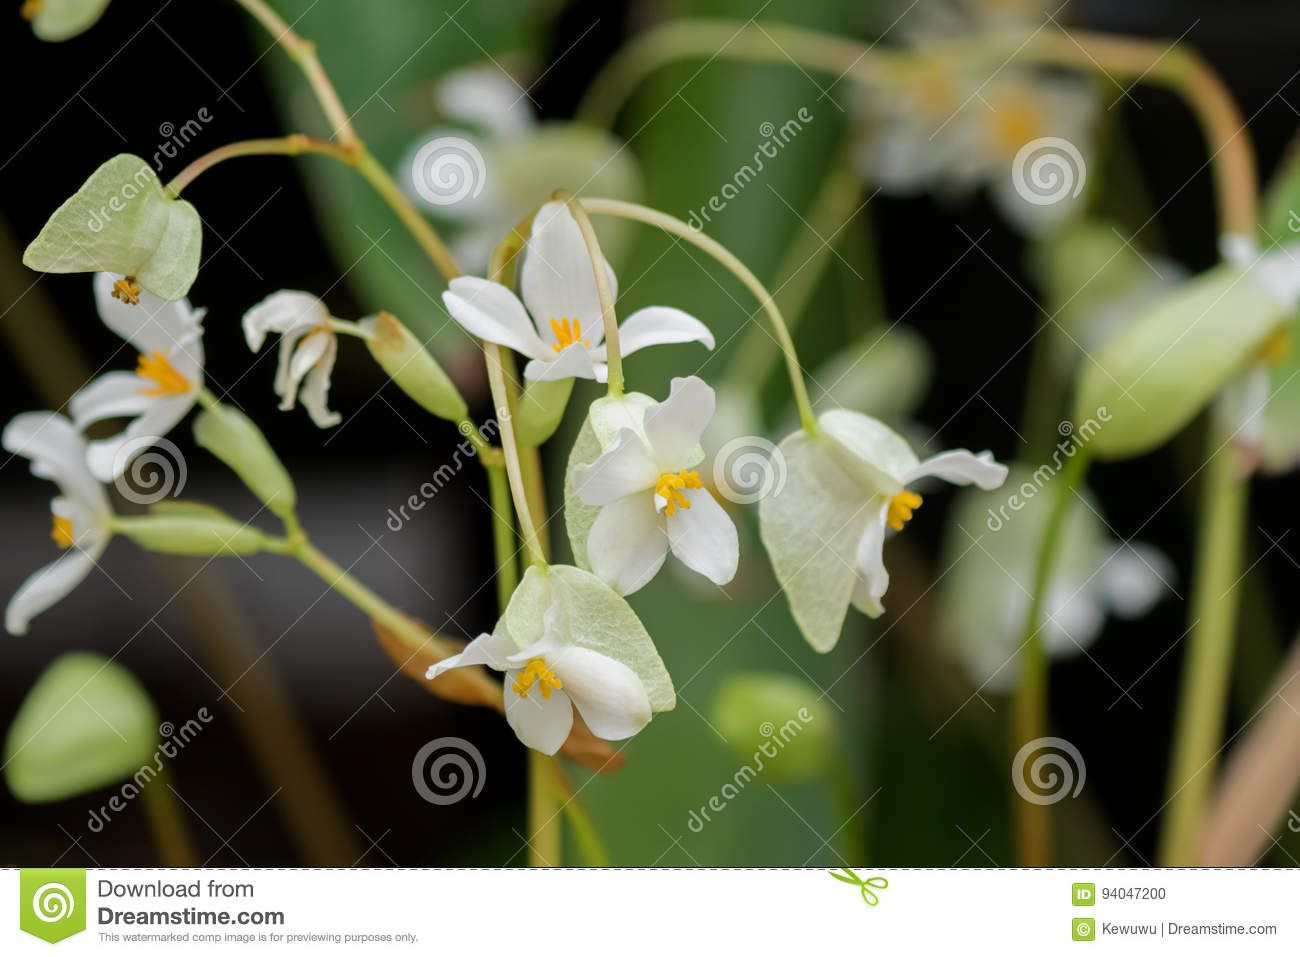 Begonia X Hybrida Baby Wing White Flower With Yellow Stamen In